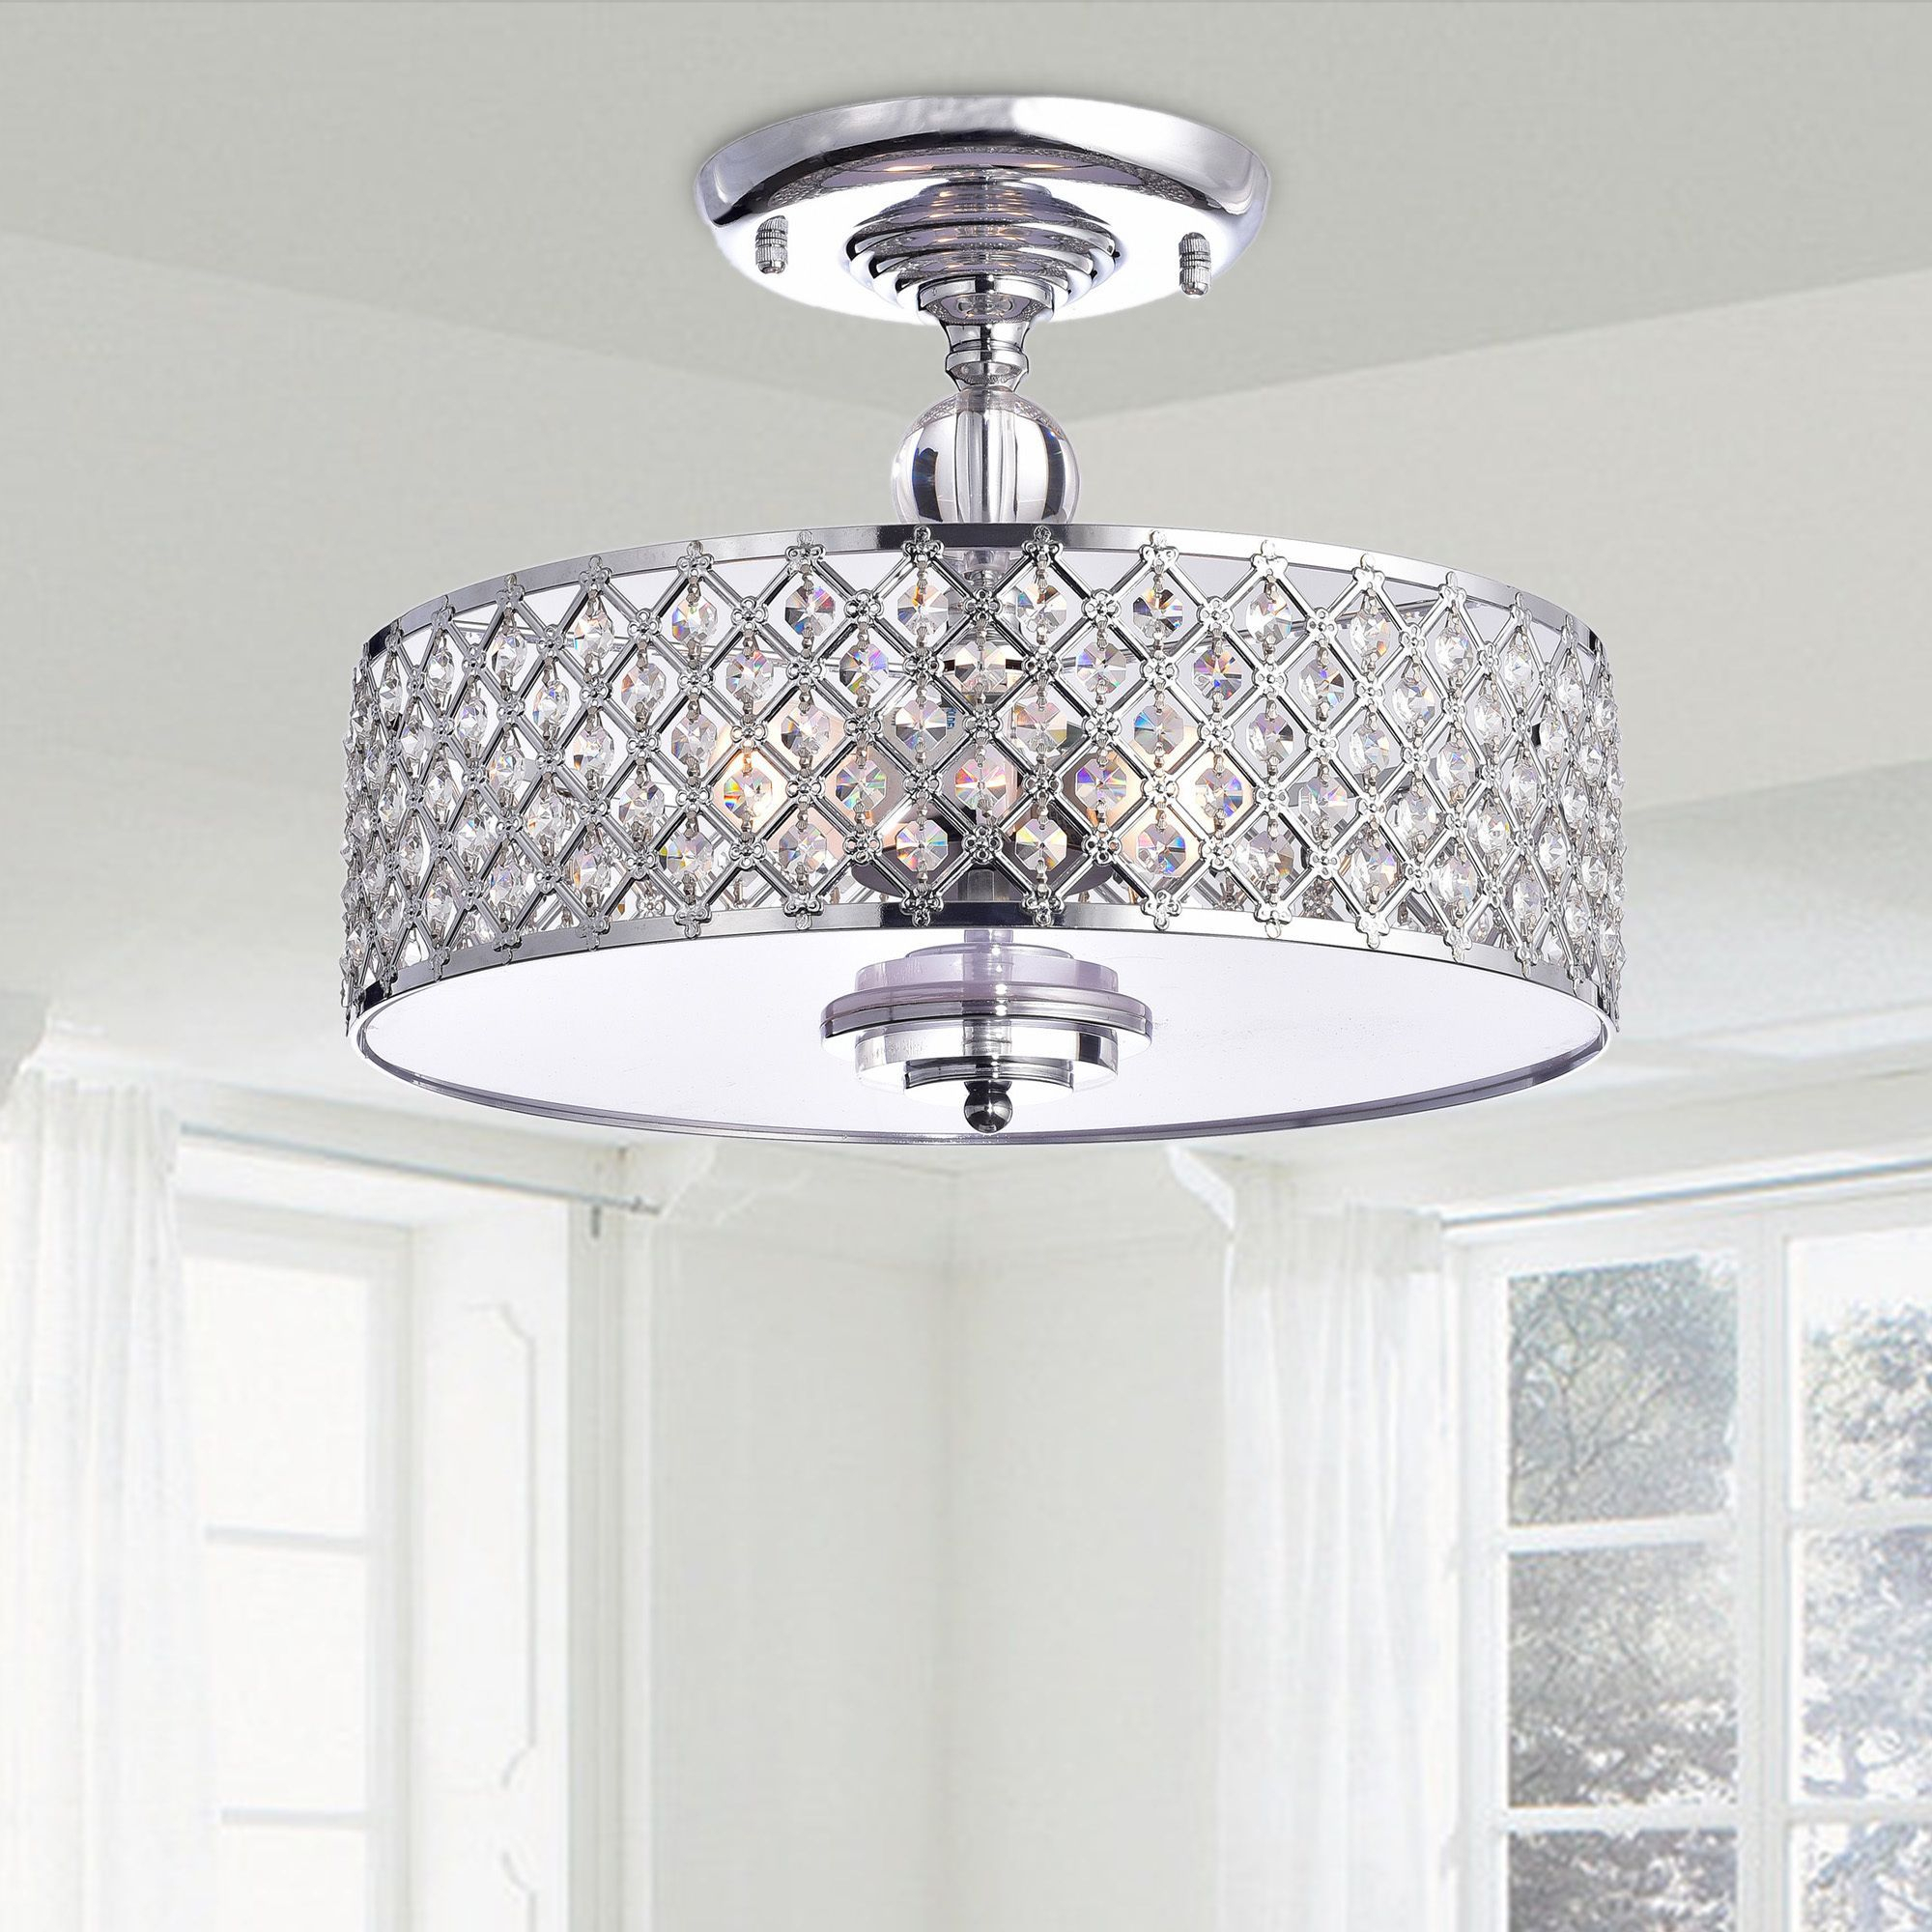 The Martina Chrome Finish Crystal 3 Light Flush Mount Pertaining To Clea 3 Light Crystal Chandeliers (View 4 of 30)